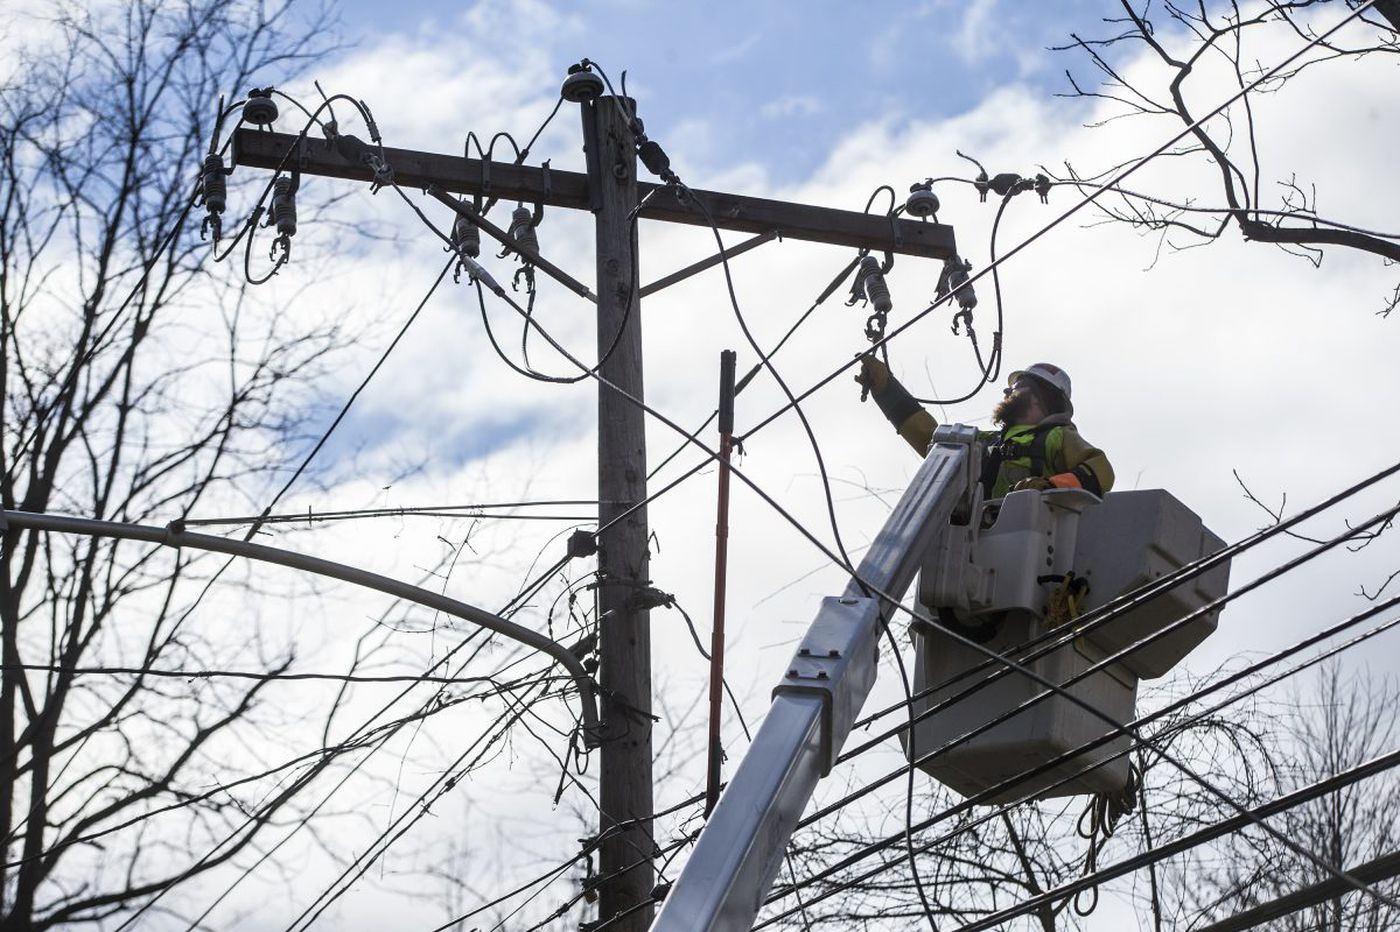 After the winter storm: Latest on power outages, returning to normal